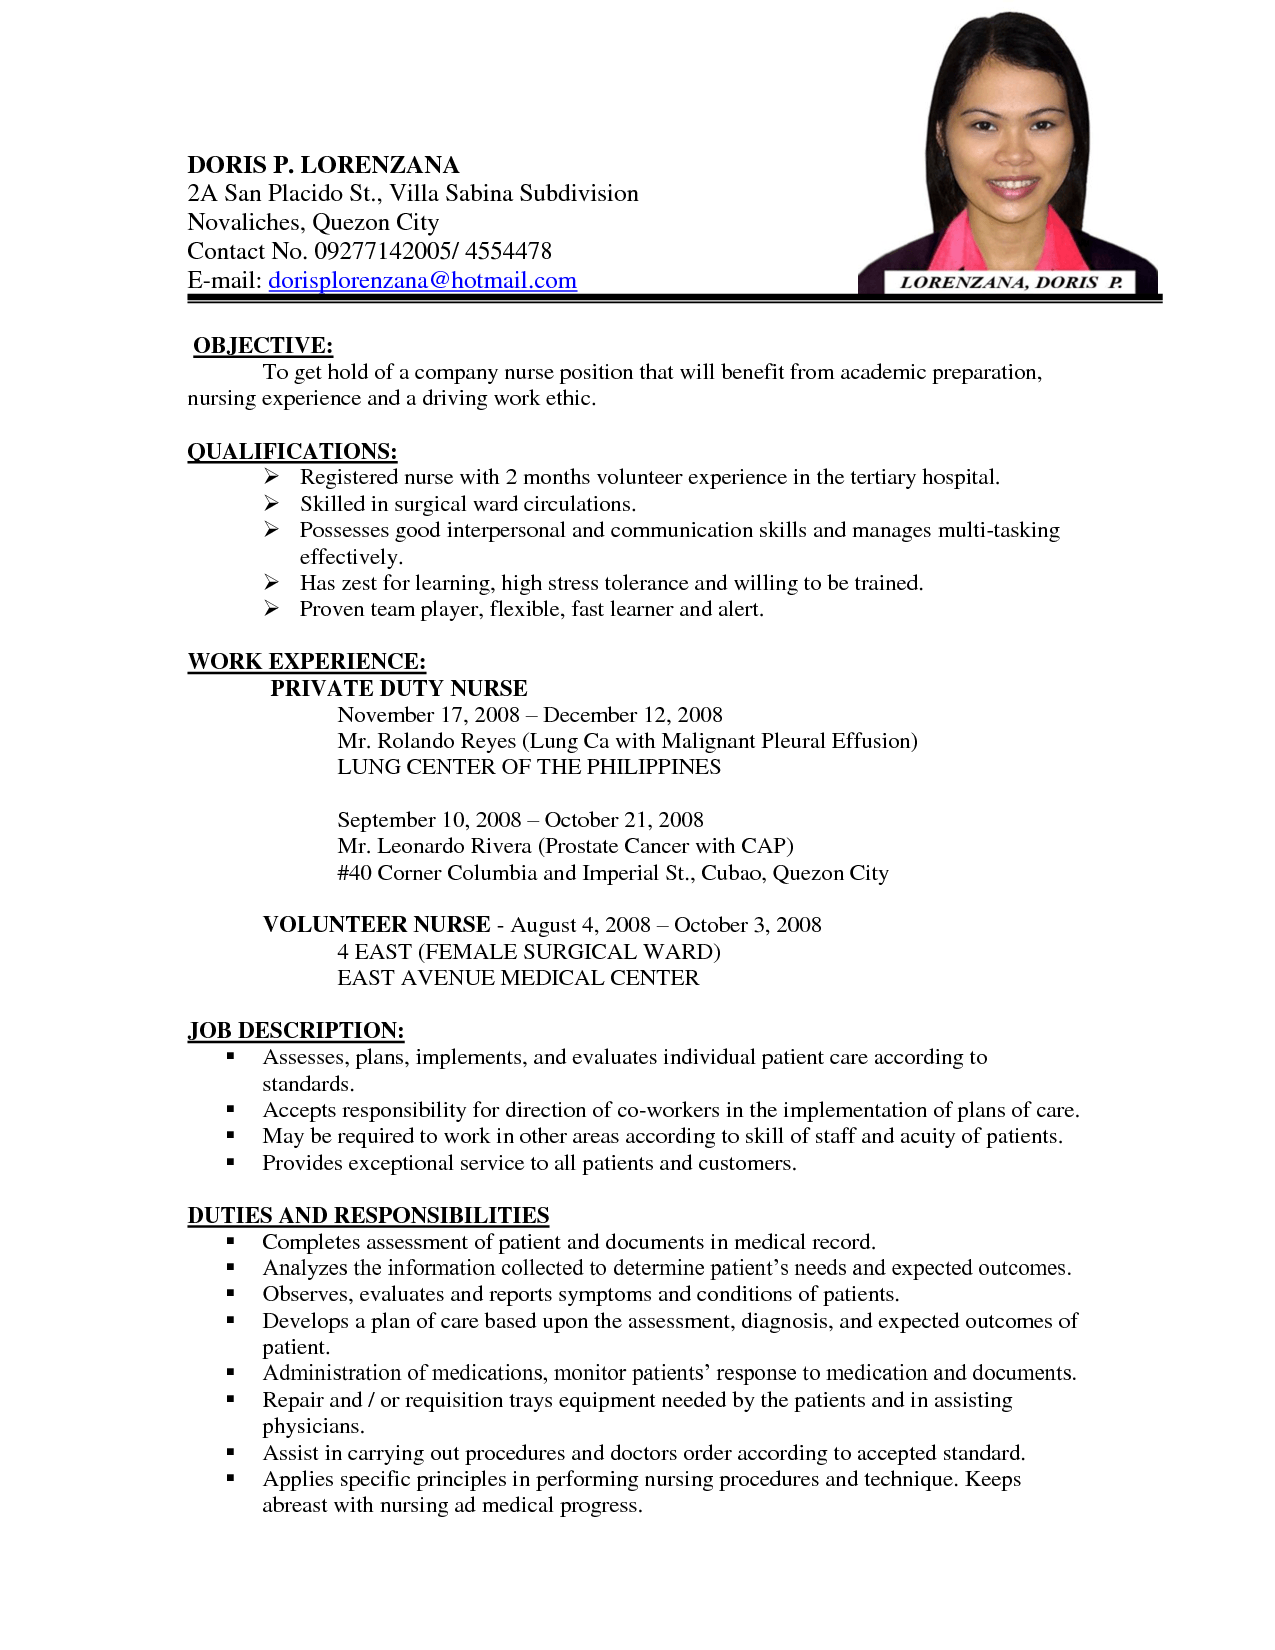 Nursing Resume Skills Image Result For Curriculum Vitae Format For A Nurse  Card